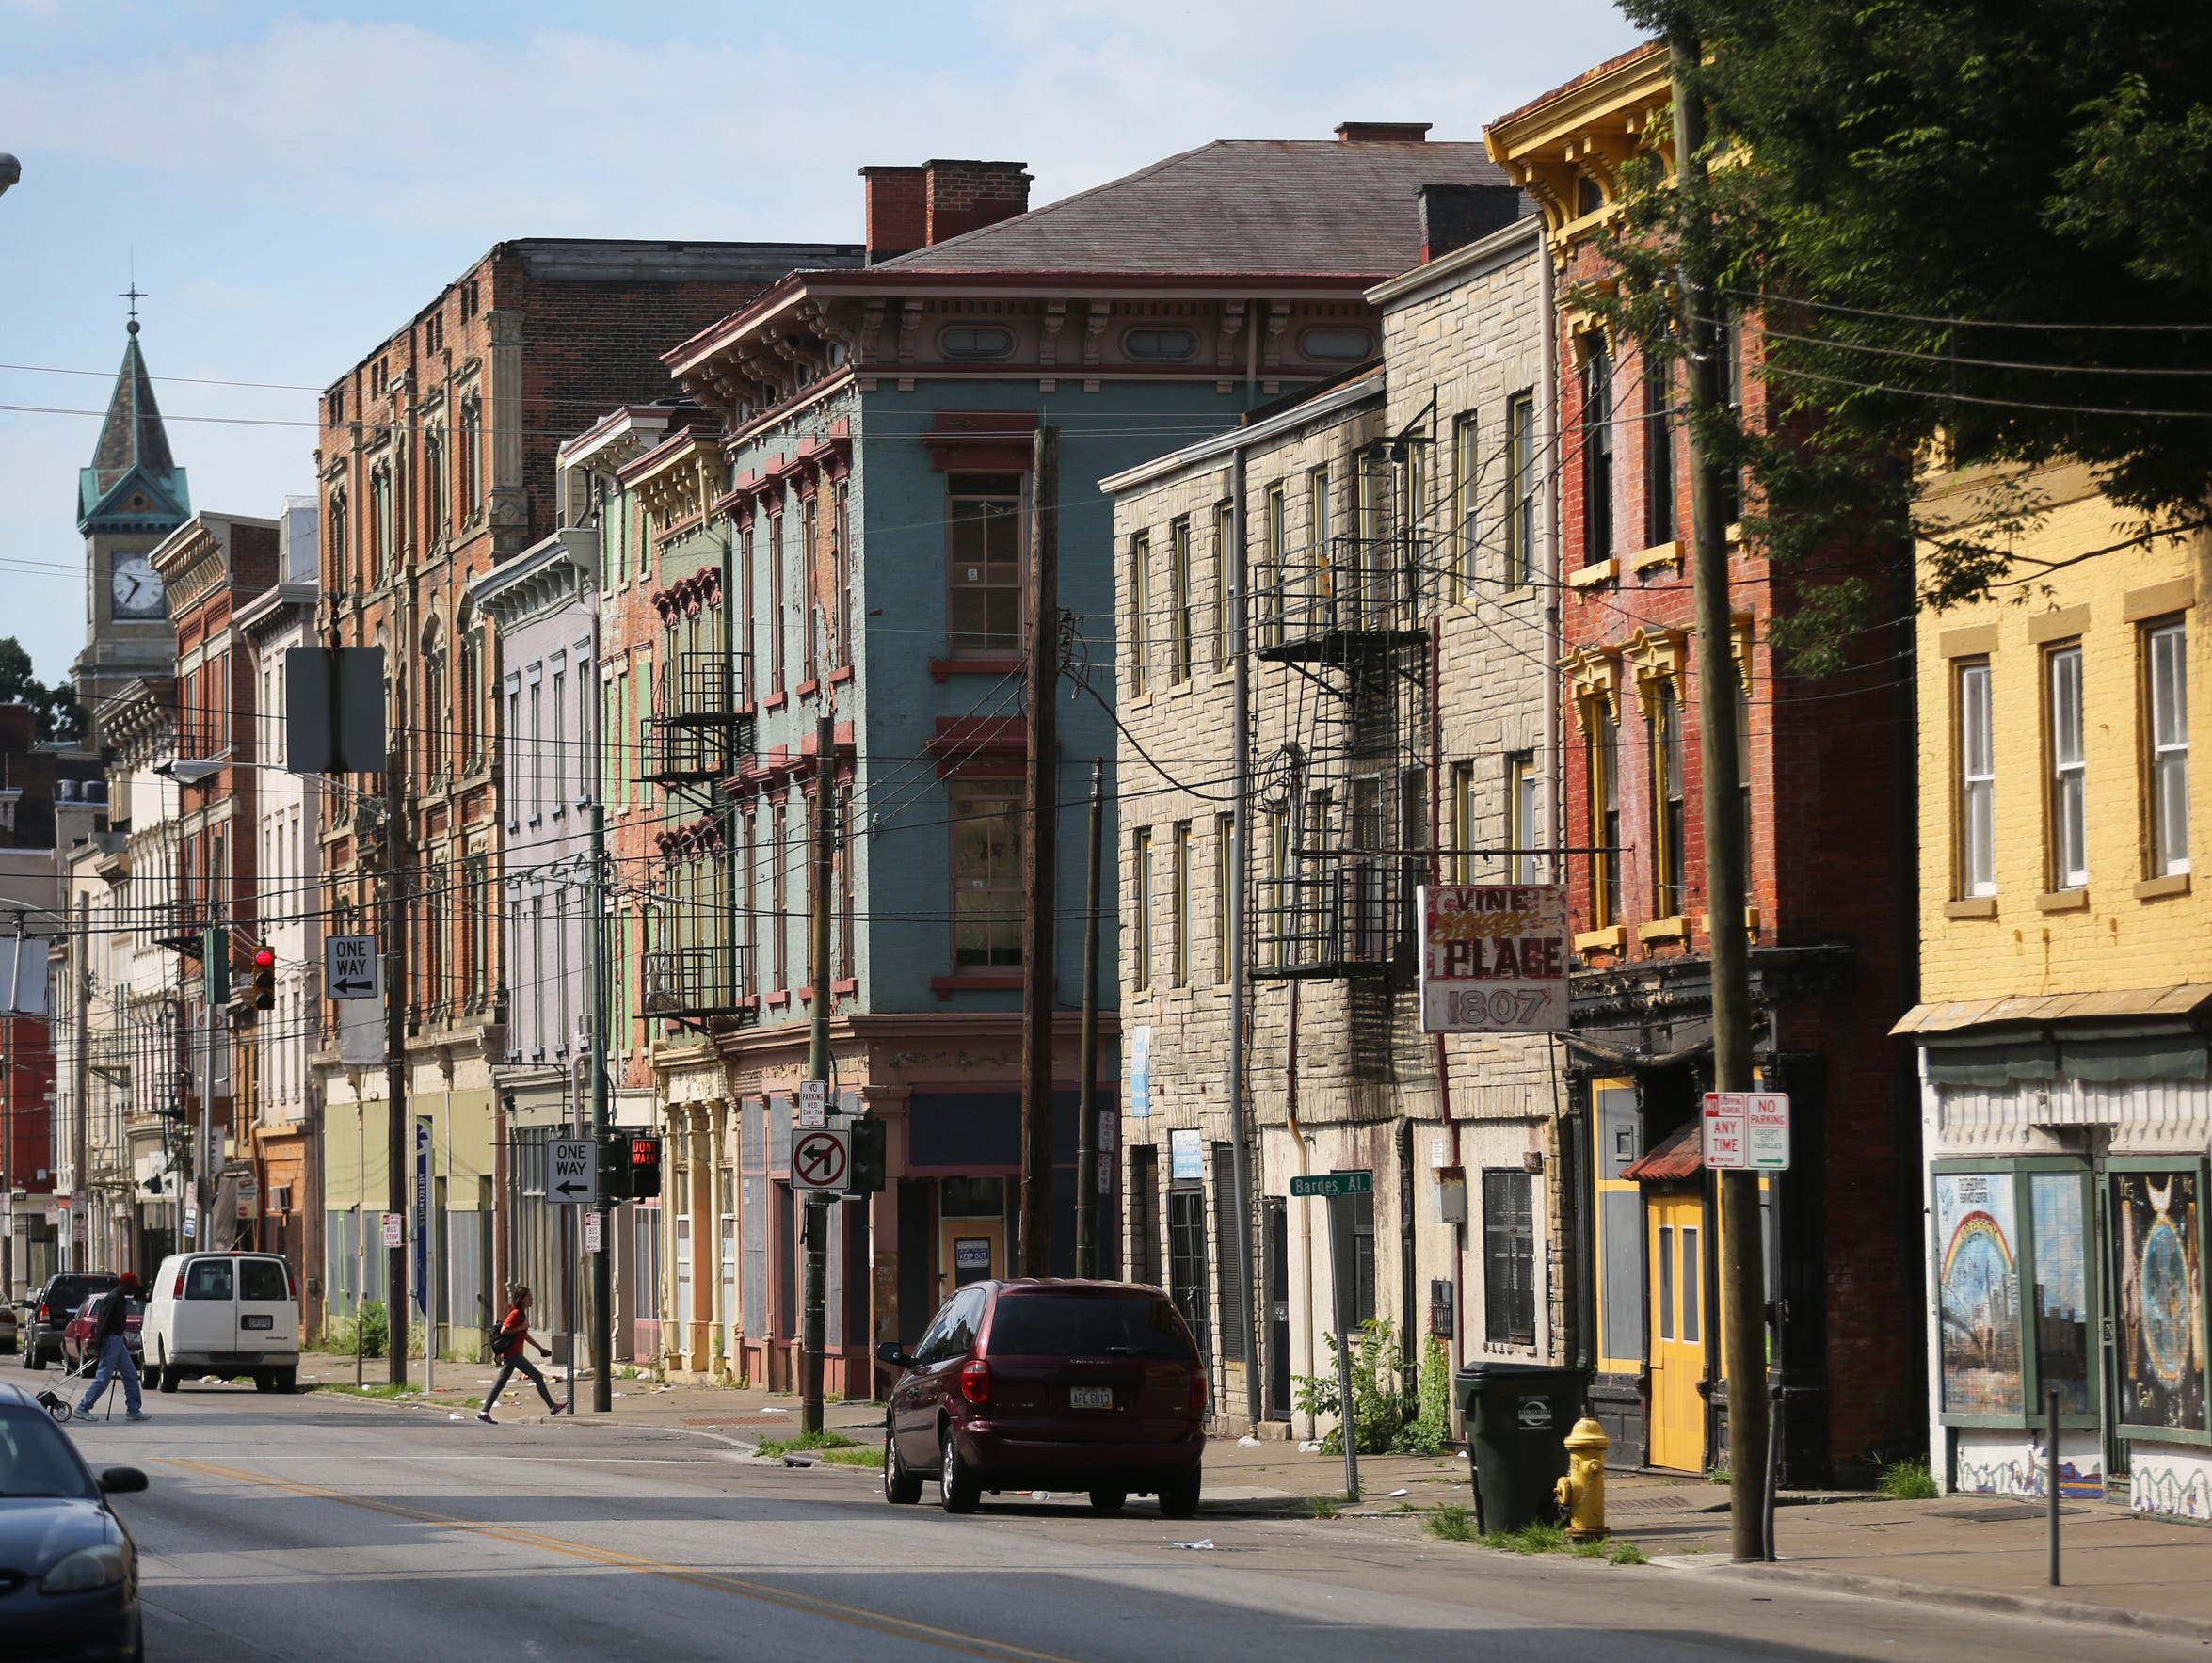 Vine street in Over-the-Rhine, north of Liberty Street.